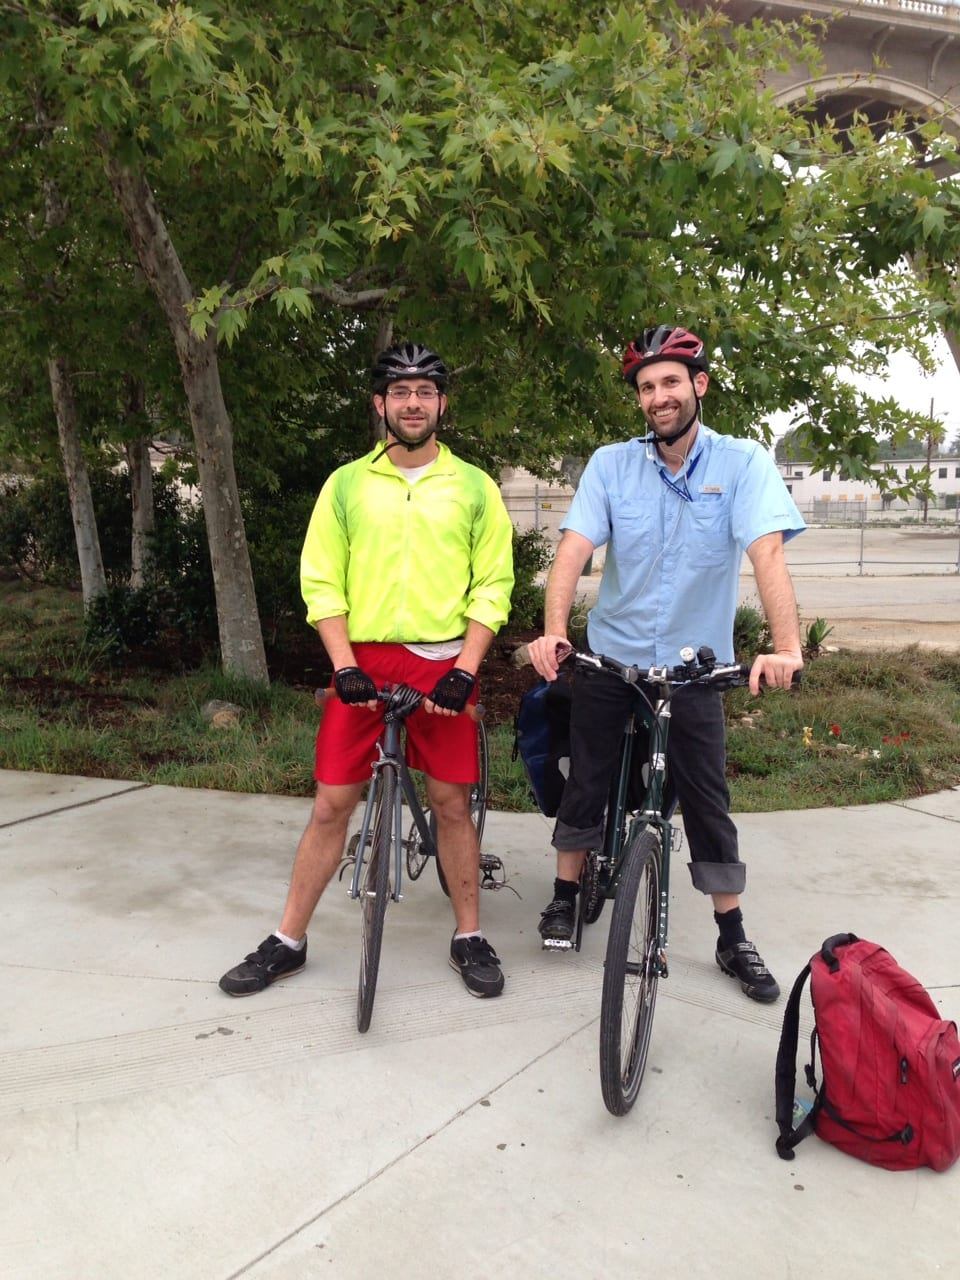 Charles and Tushar on their morning bike train to work.